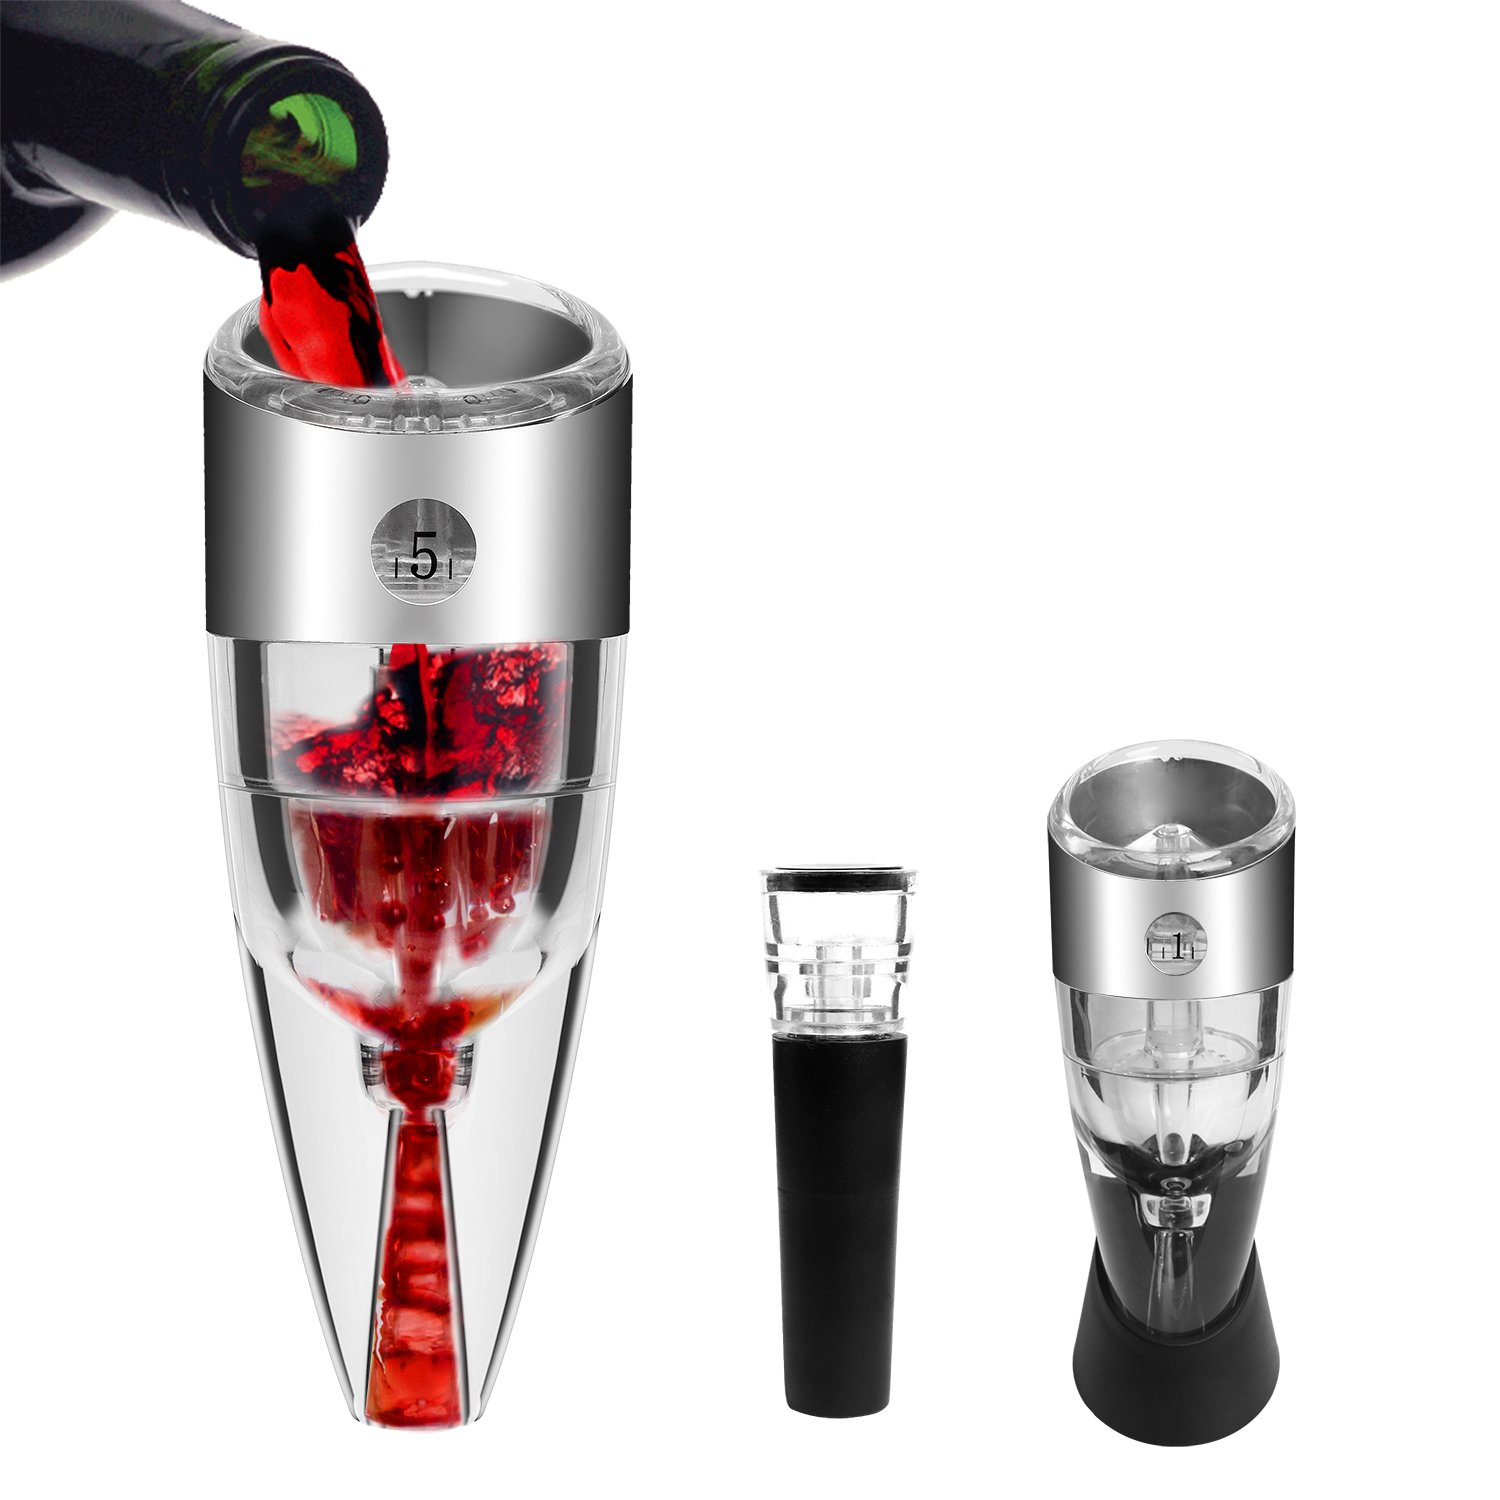 Wine Aerator Decanter - Empino Premium Instant Aerating Pourer - Wine Filters for Sulfites - Multi-Stage Design Wine Saver Diffuser with Vacuum Wine Stopper and Carry Pouch Included